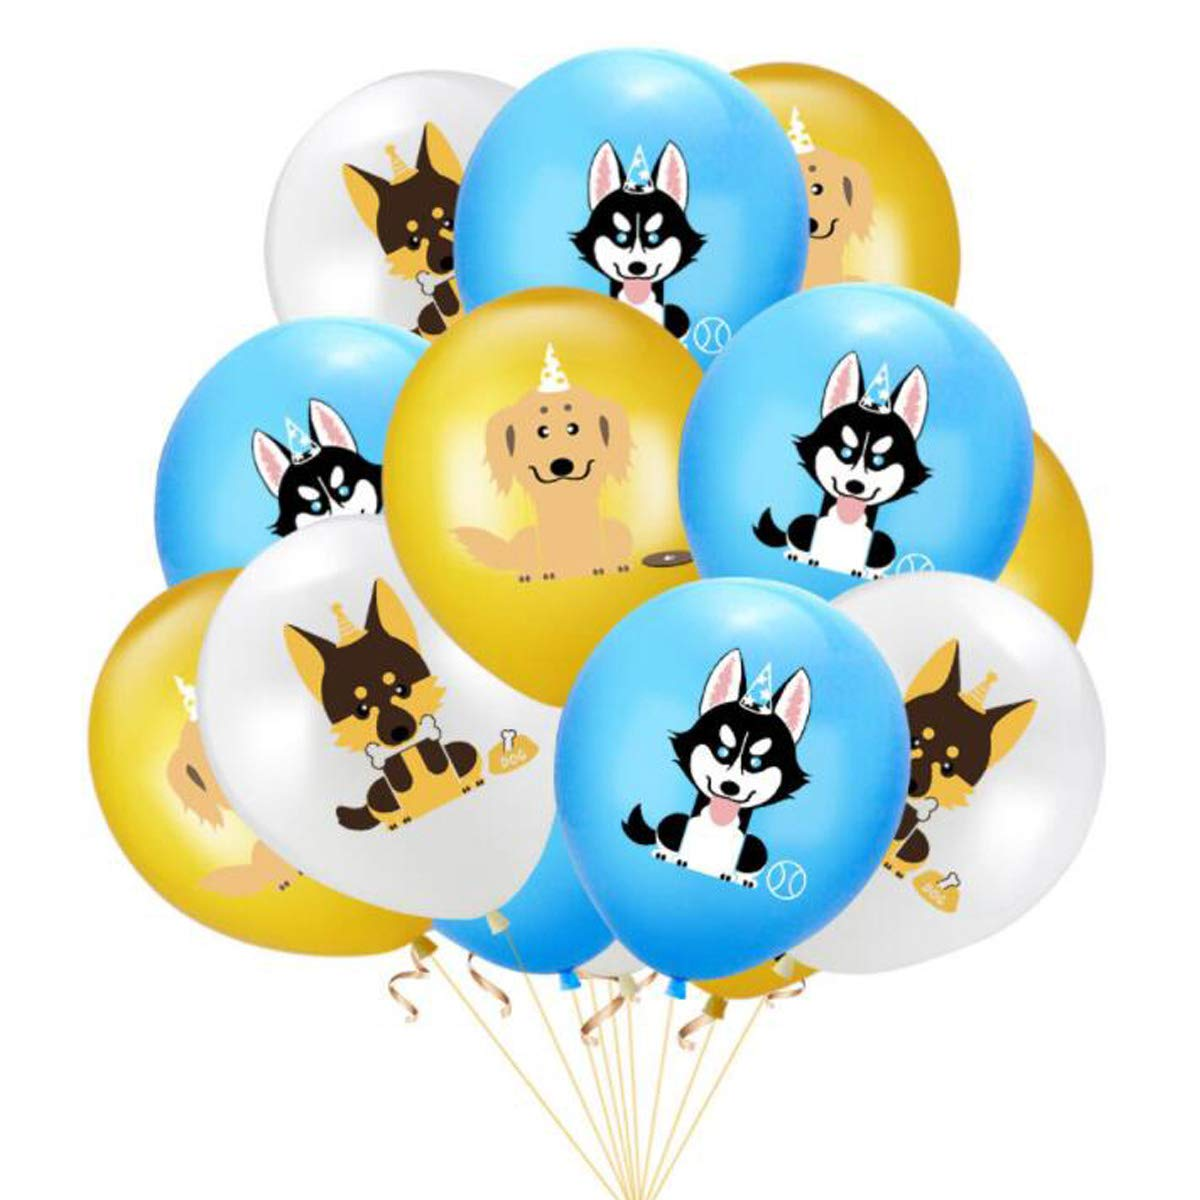 Zopai Puppy Gog Pals Balloons Boy Birthday Party Decorations Supplies 10pcs Pet Doggy Balloons with Cute Dog Print Colorful 12 Inches Latex Balloon